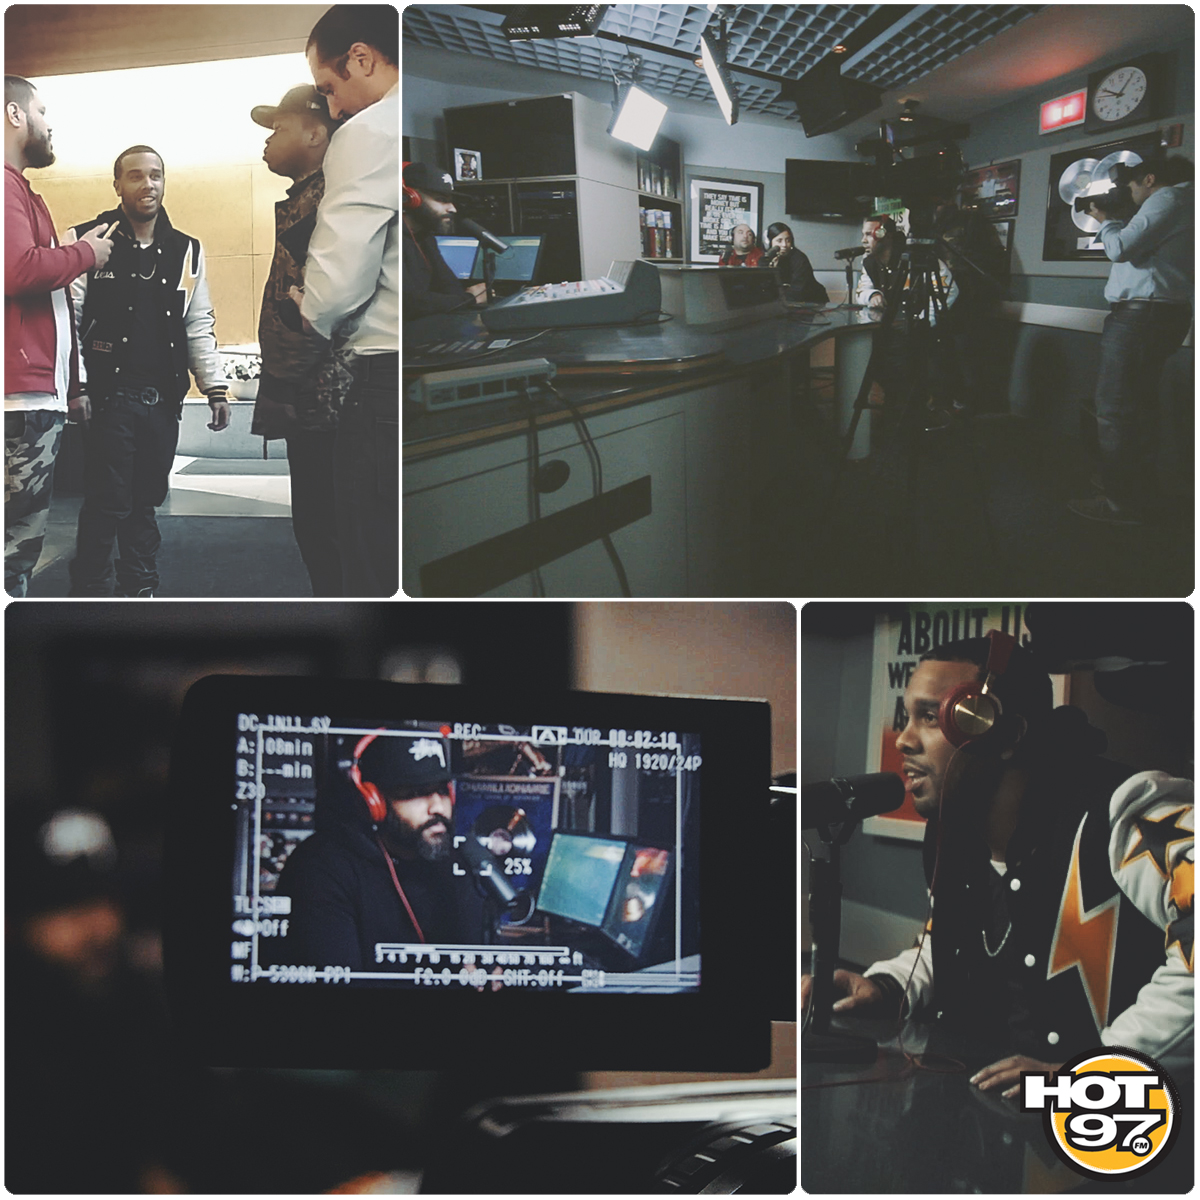 JR Writer Live on HOT 97 (Now on WSHH) | BTS filmed by Masar coming soon